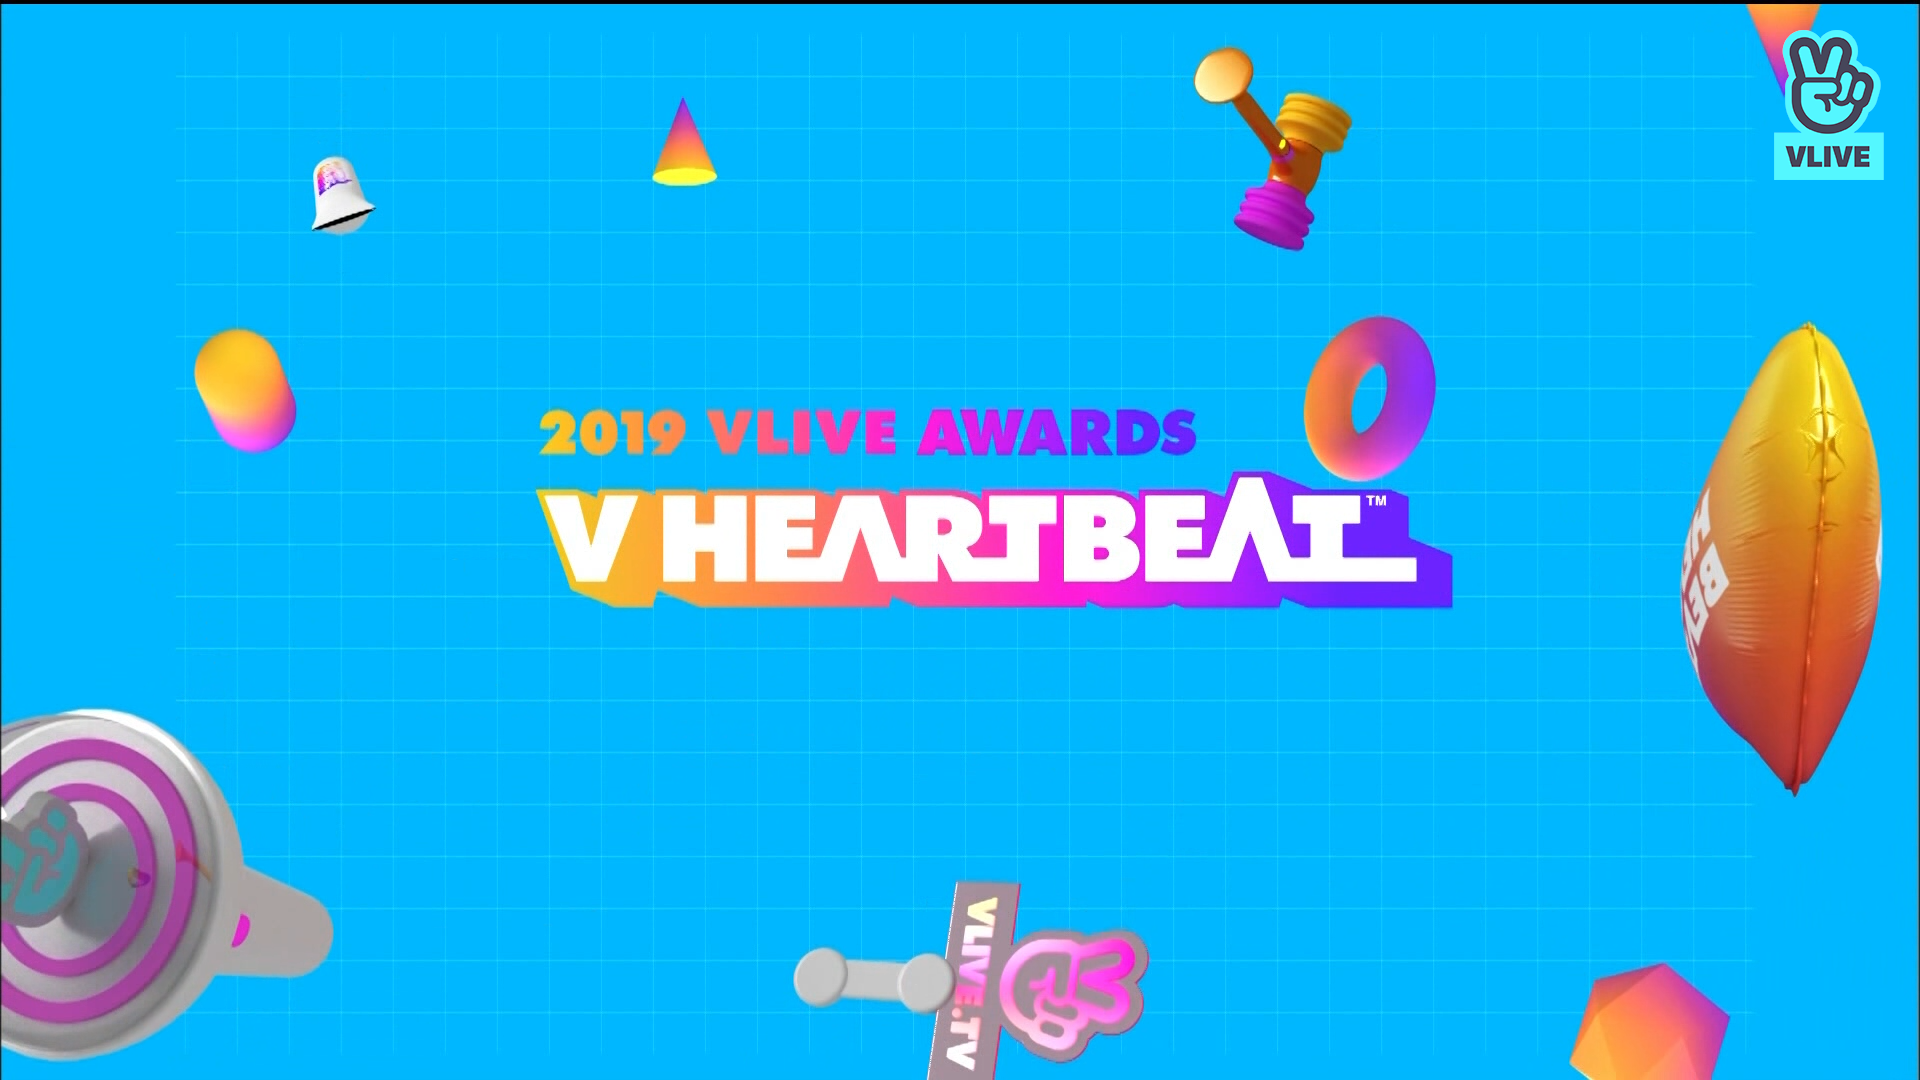 [Full] 2019 VLIVE AWARDS V HEARTBEAT PART2